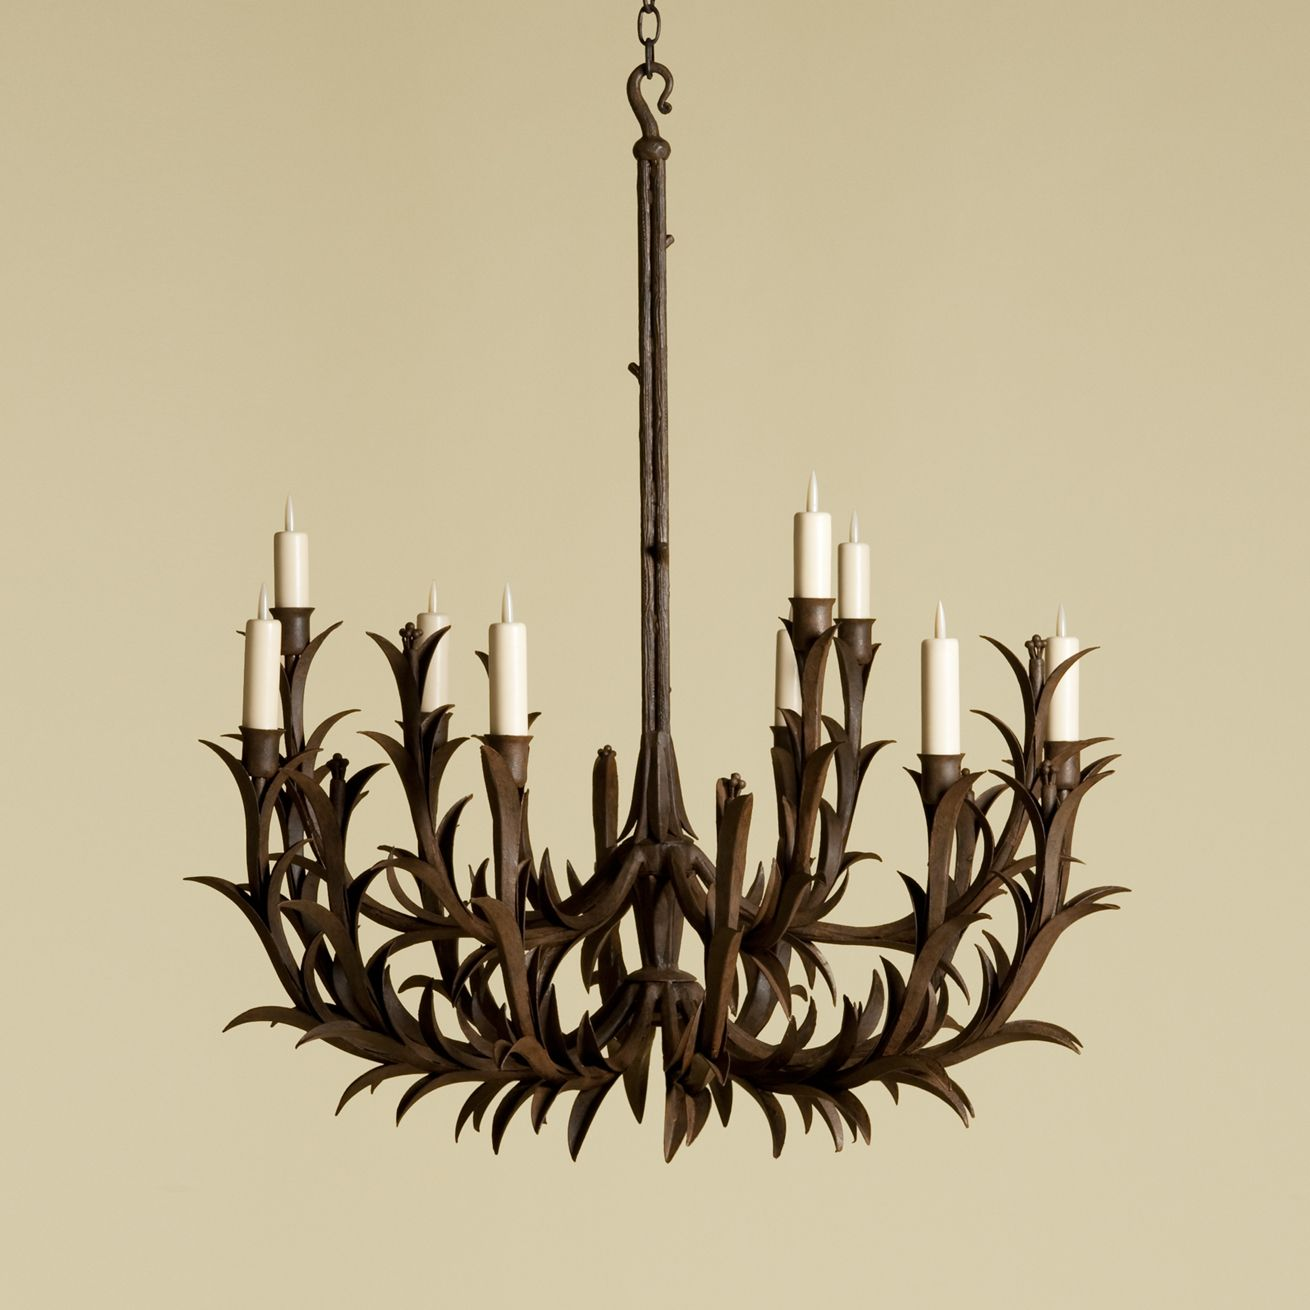 Rose tarlow sharpleaf chandelier would add great interest to a room malvernweather Images